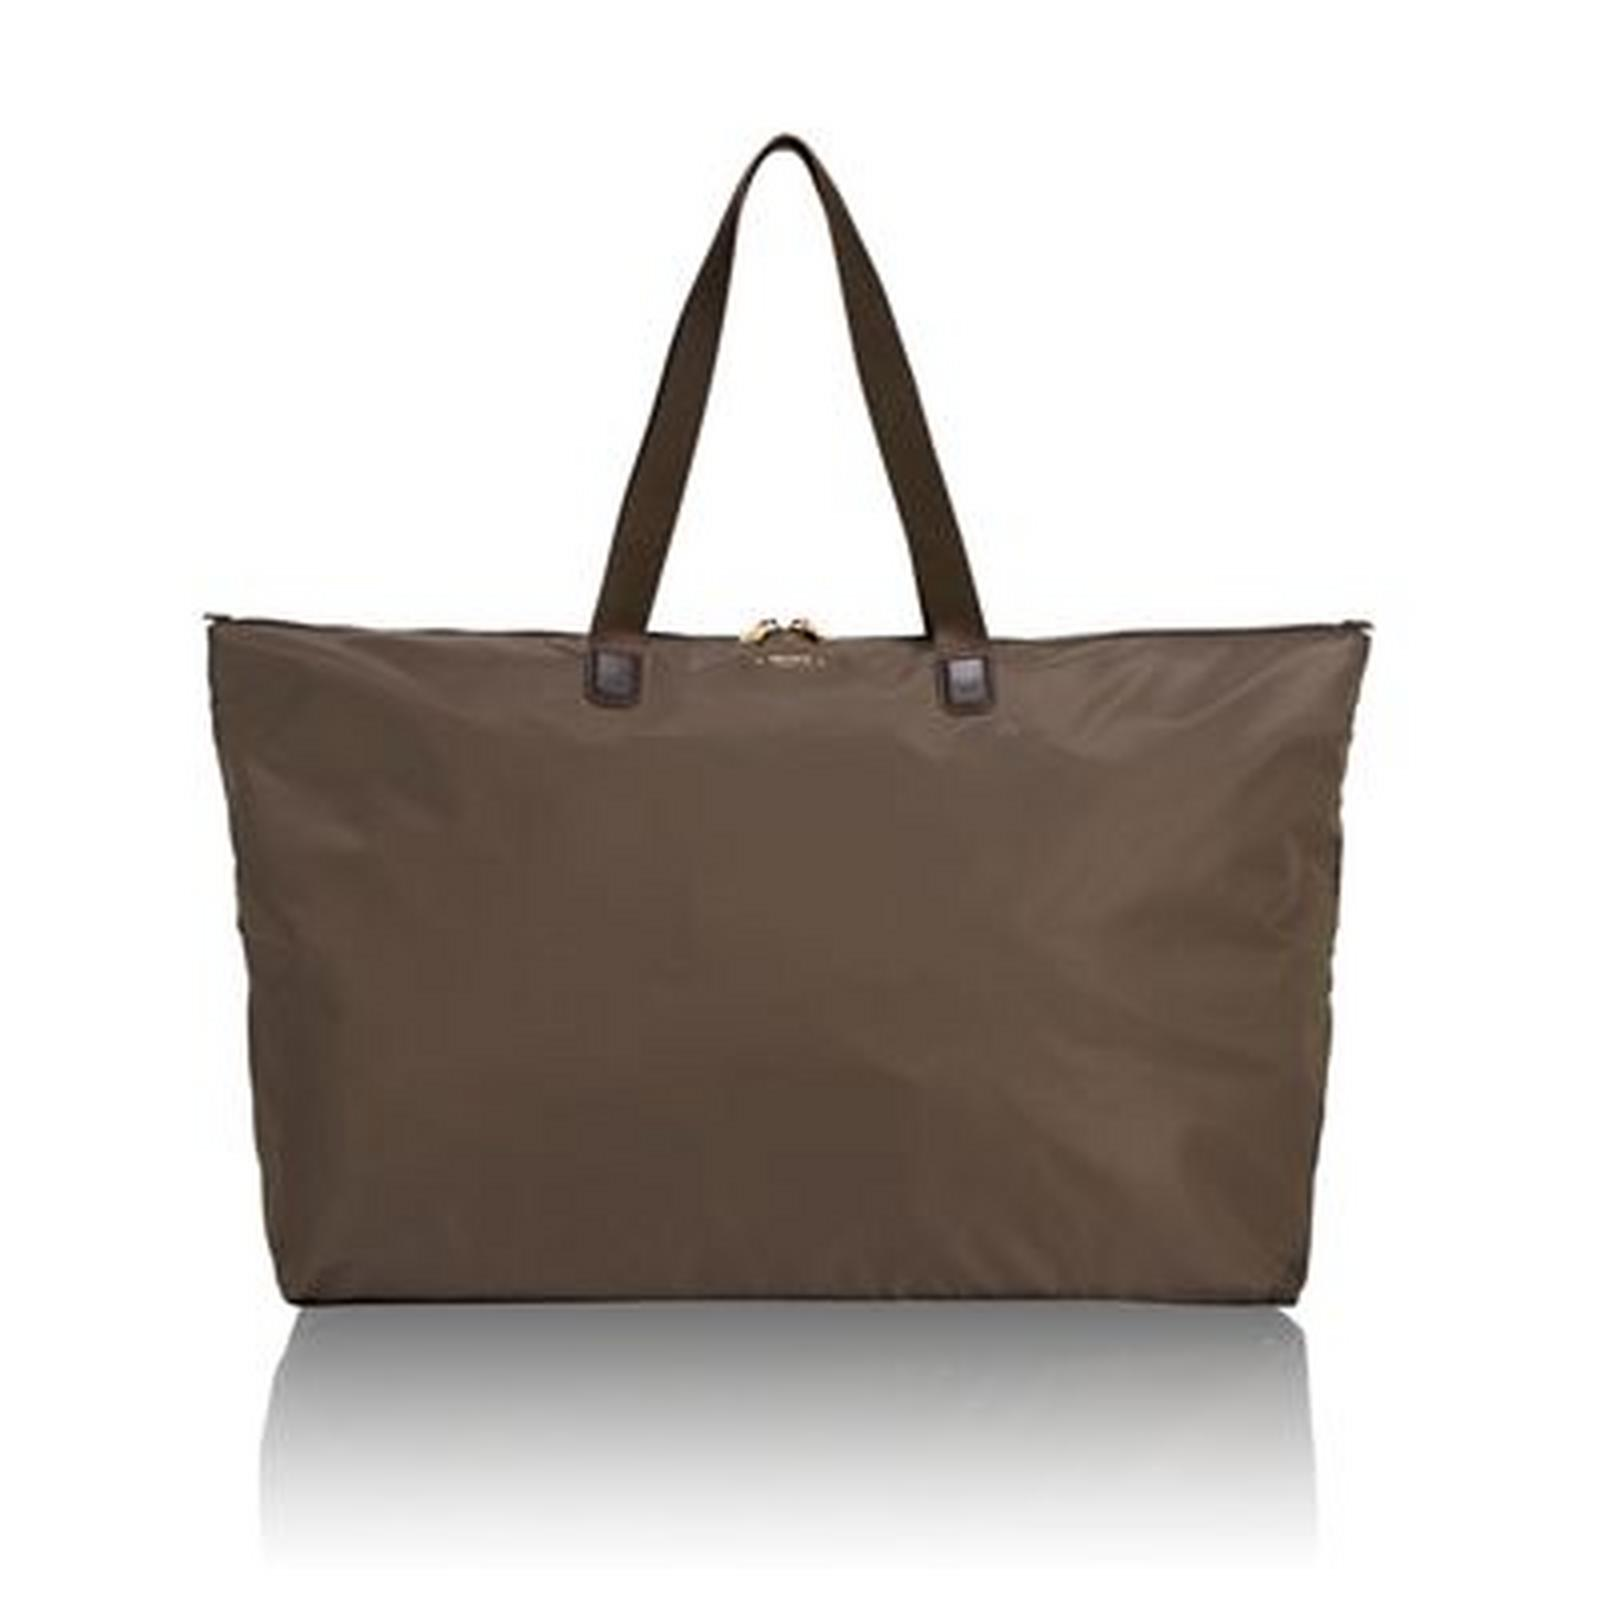 Just In Case? Tote